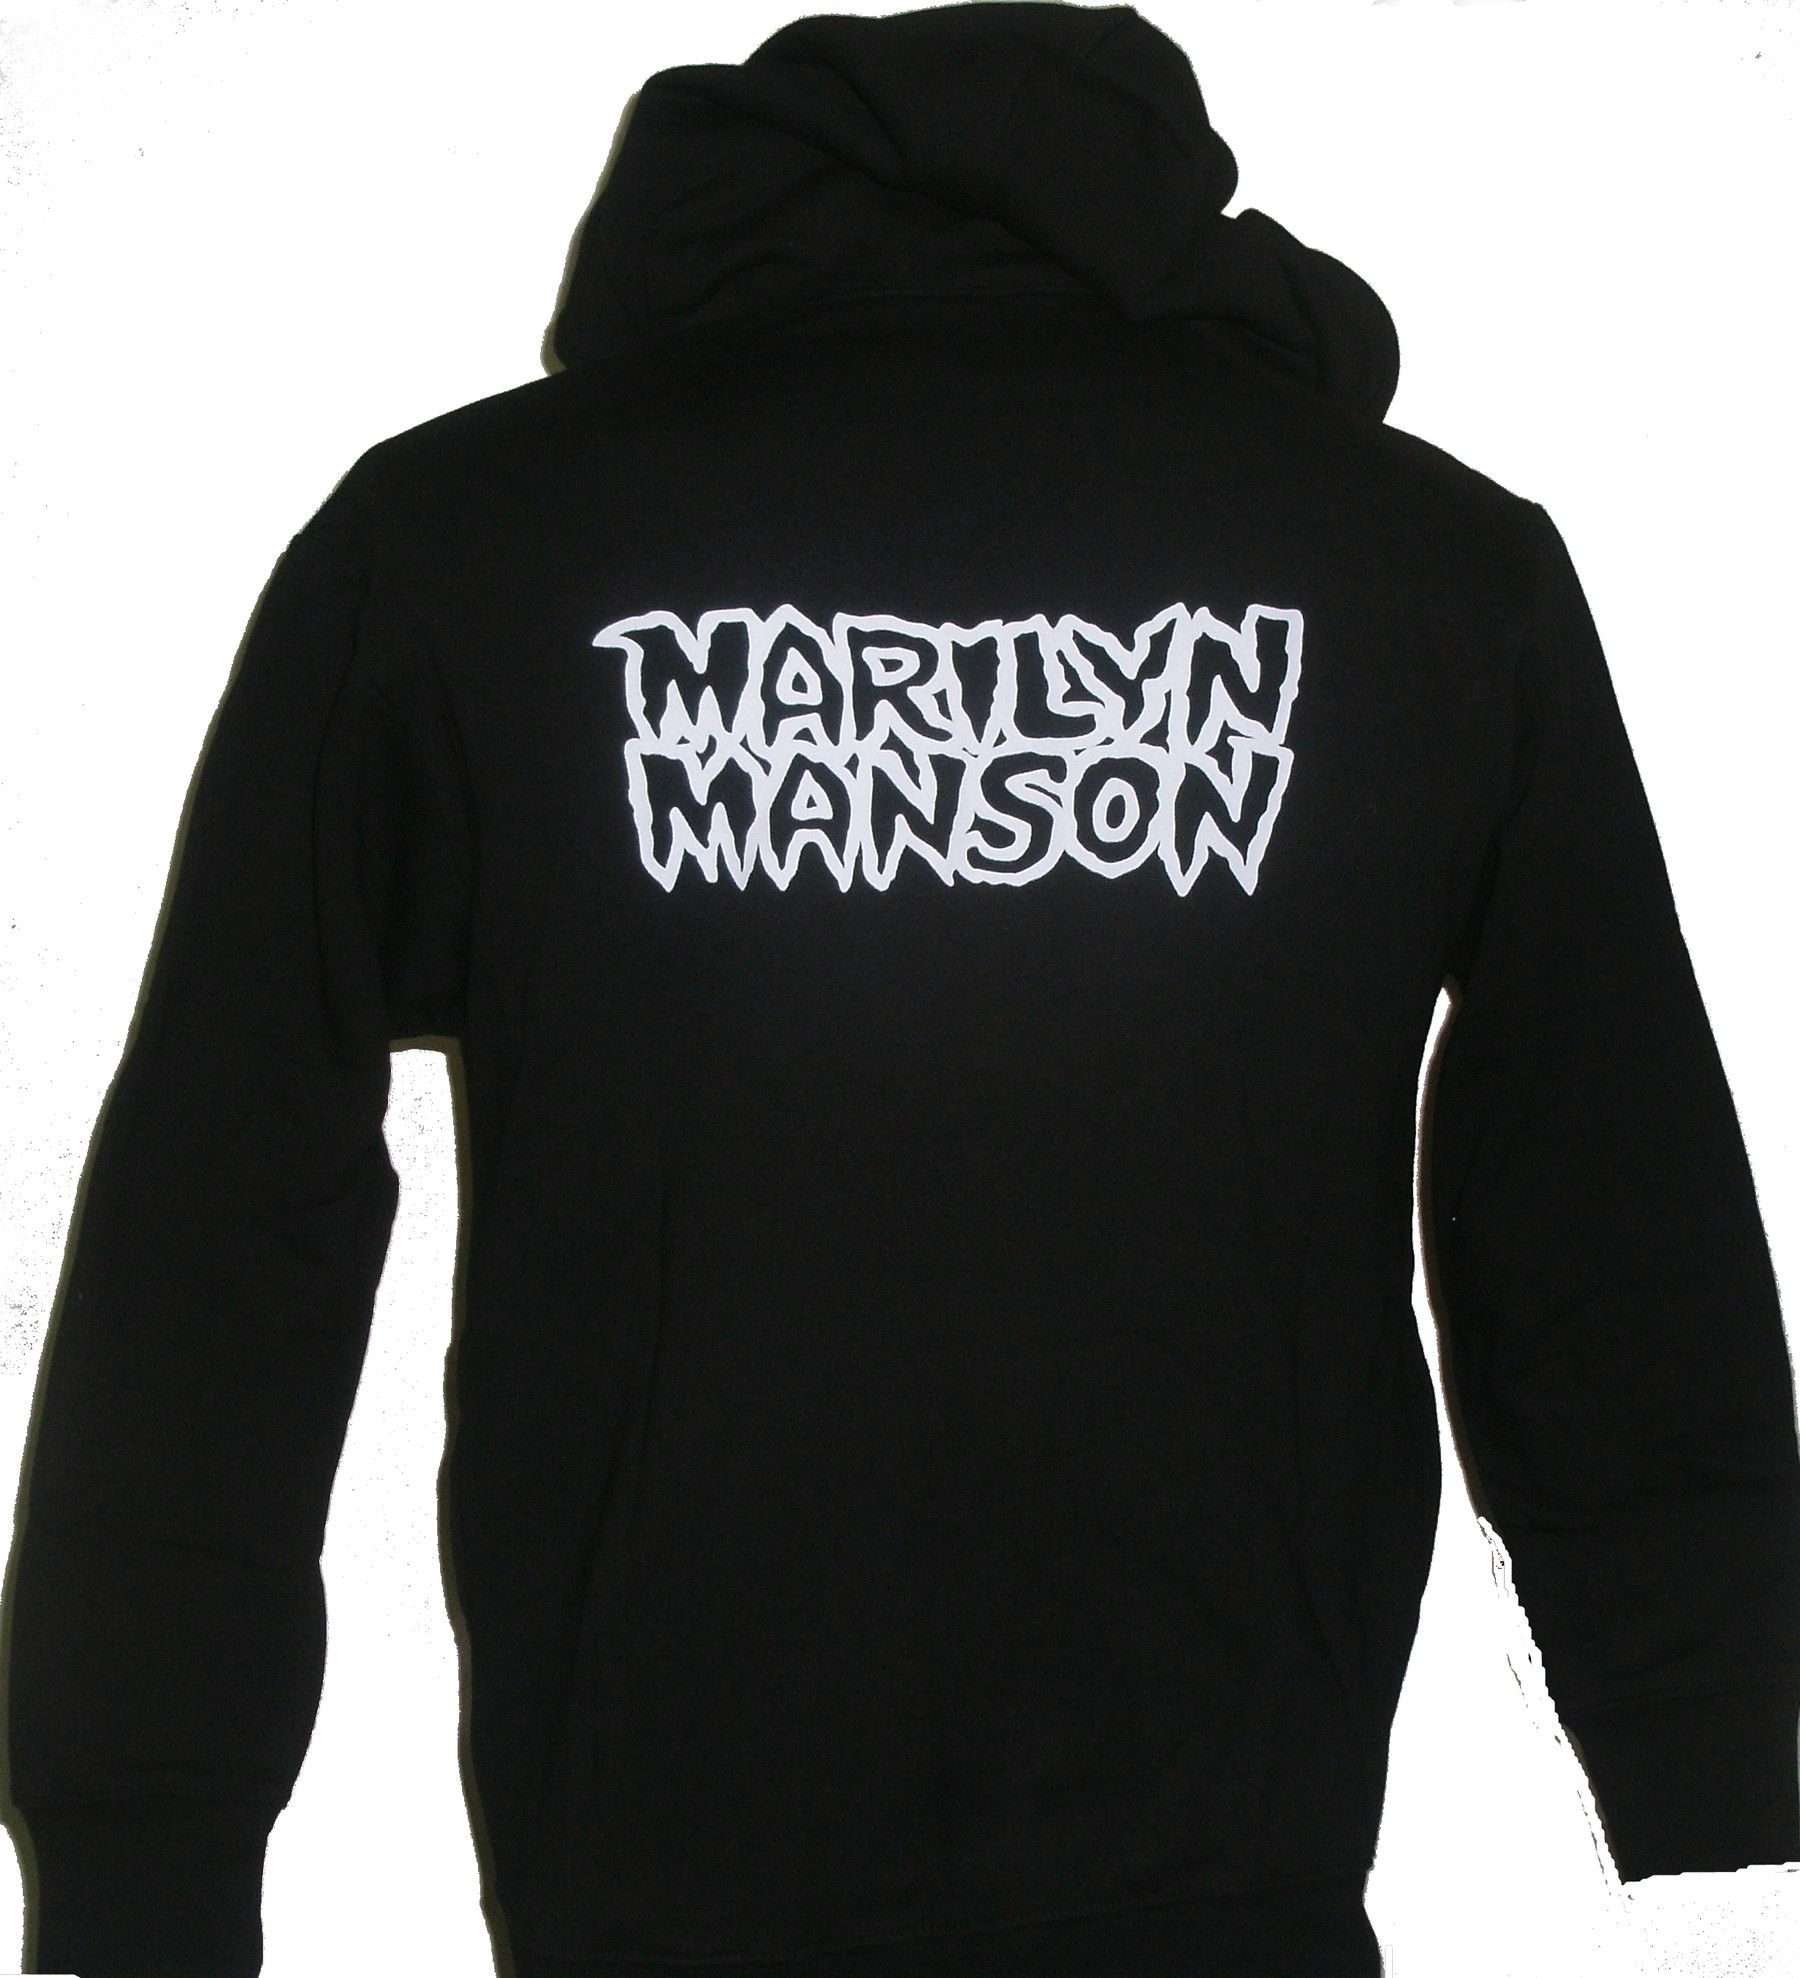 quality and quantity assured hot-selling authentic various styles Marilyn Manson jacket/hoodie The Reverend size L